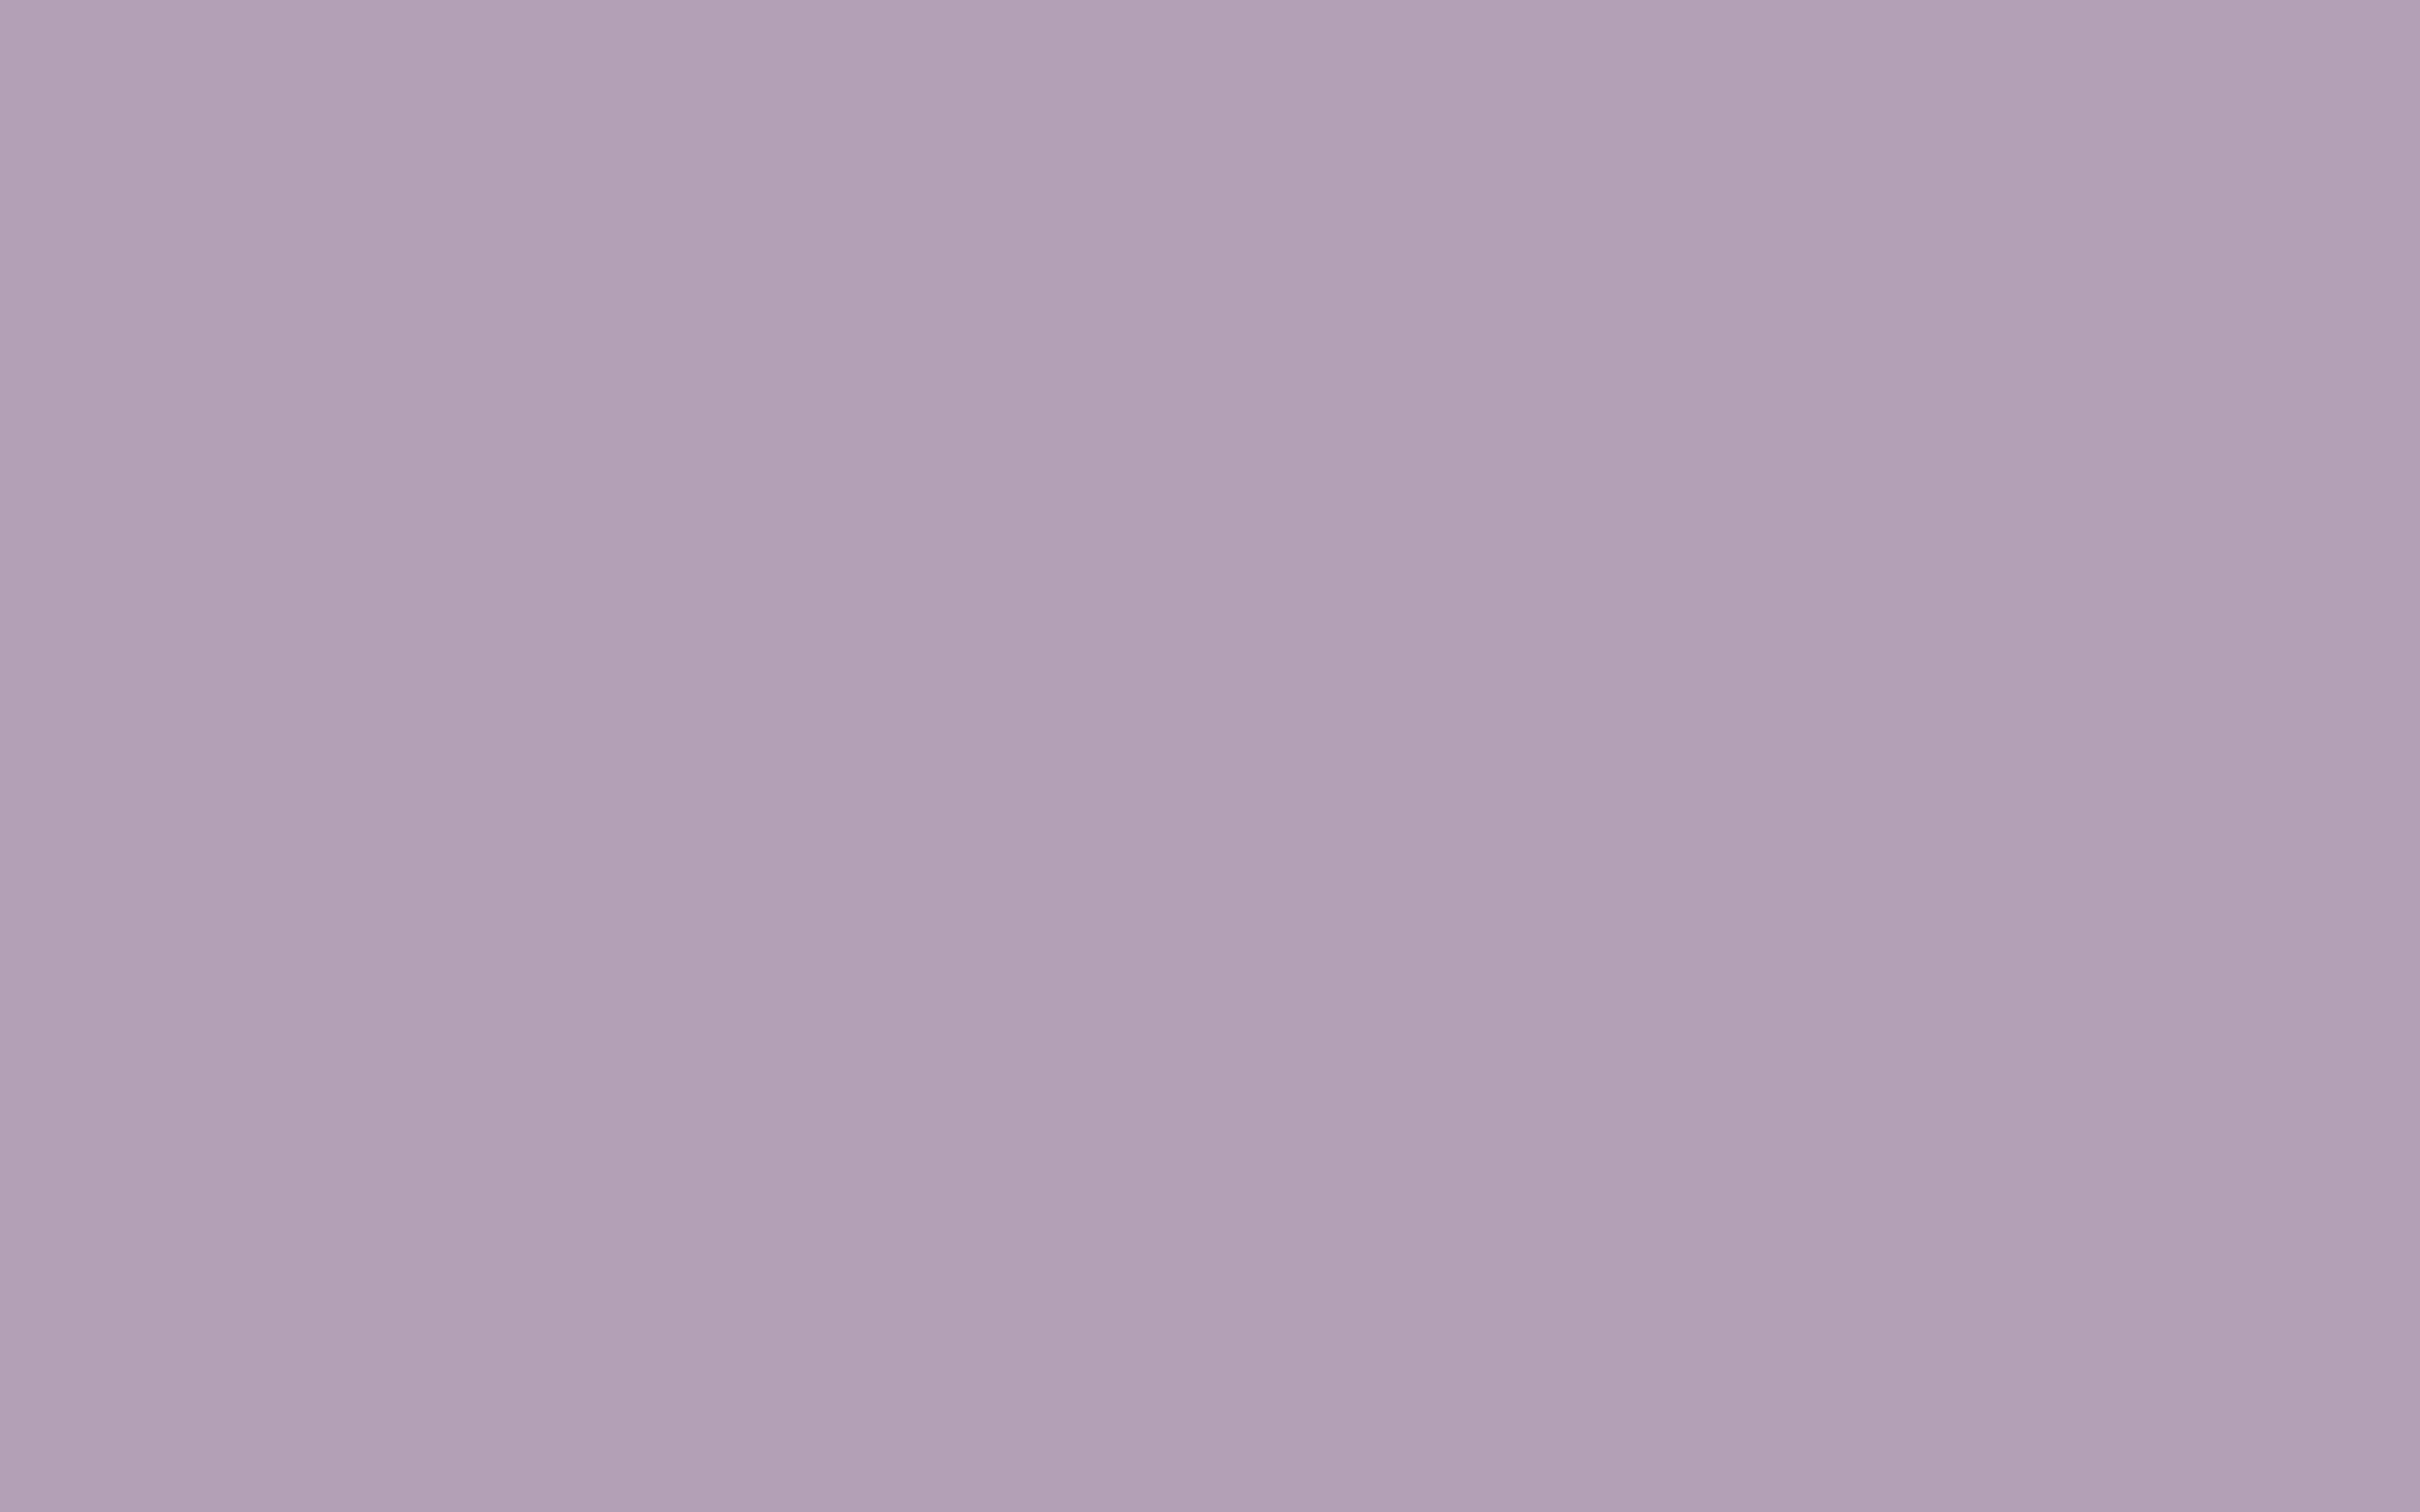 2880×1800-pastel-purple-solid-color-background.jpg